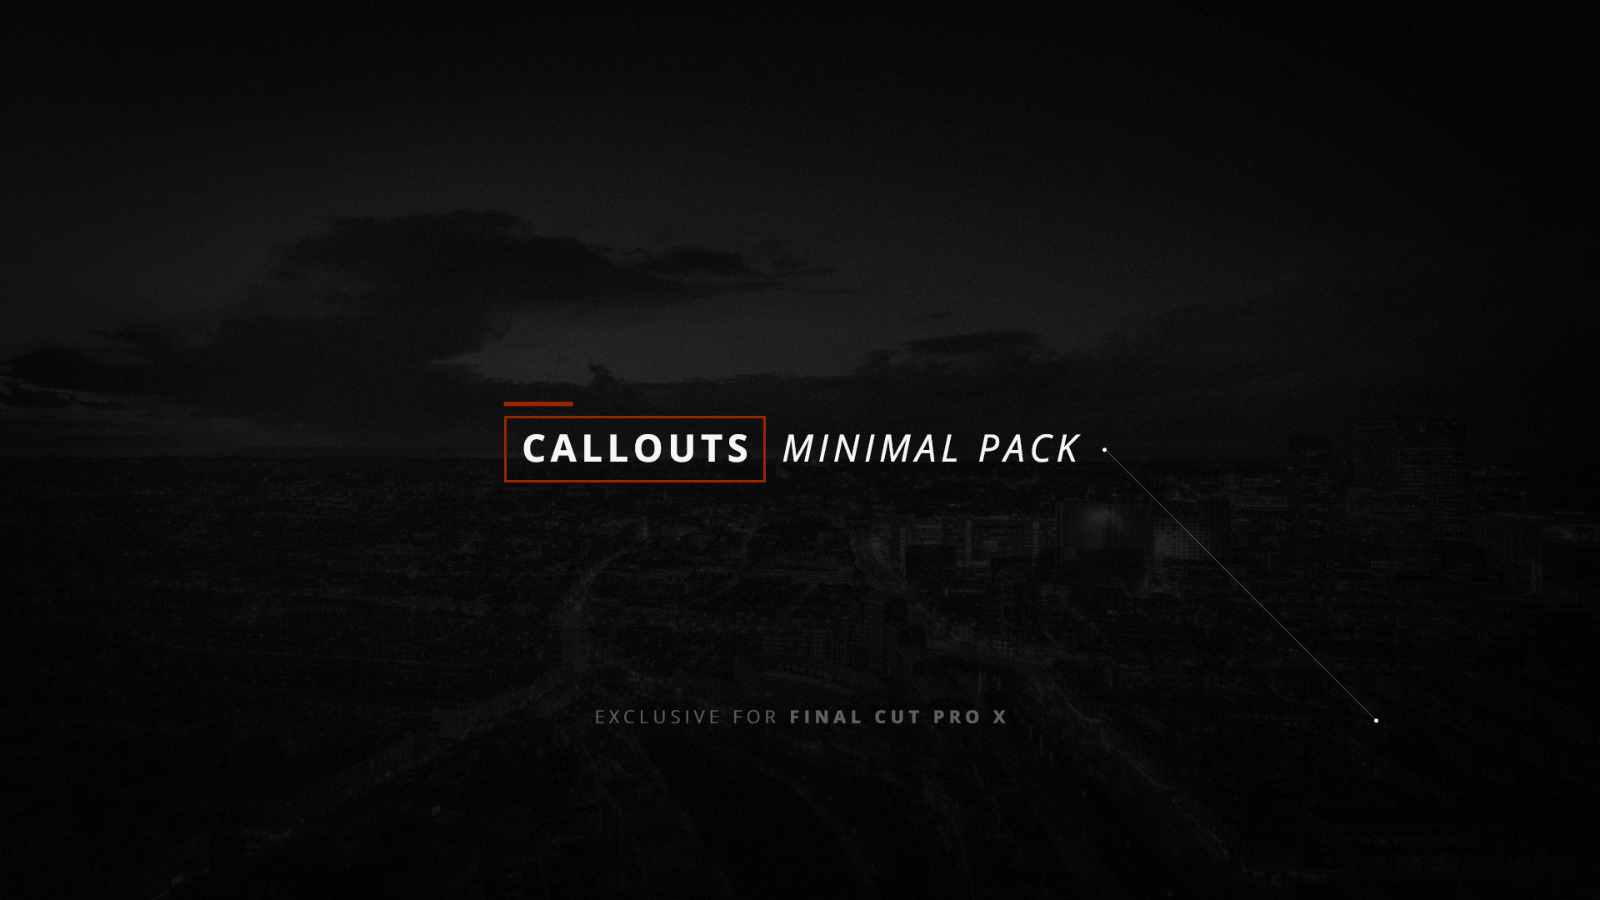 Callouts Minimal Pack